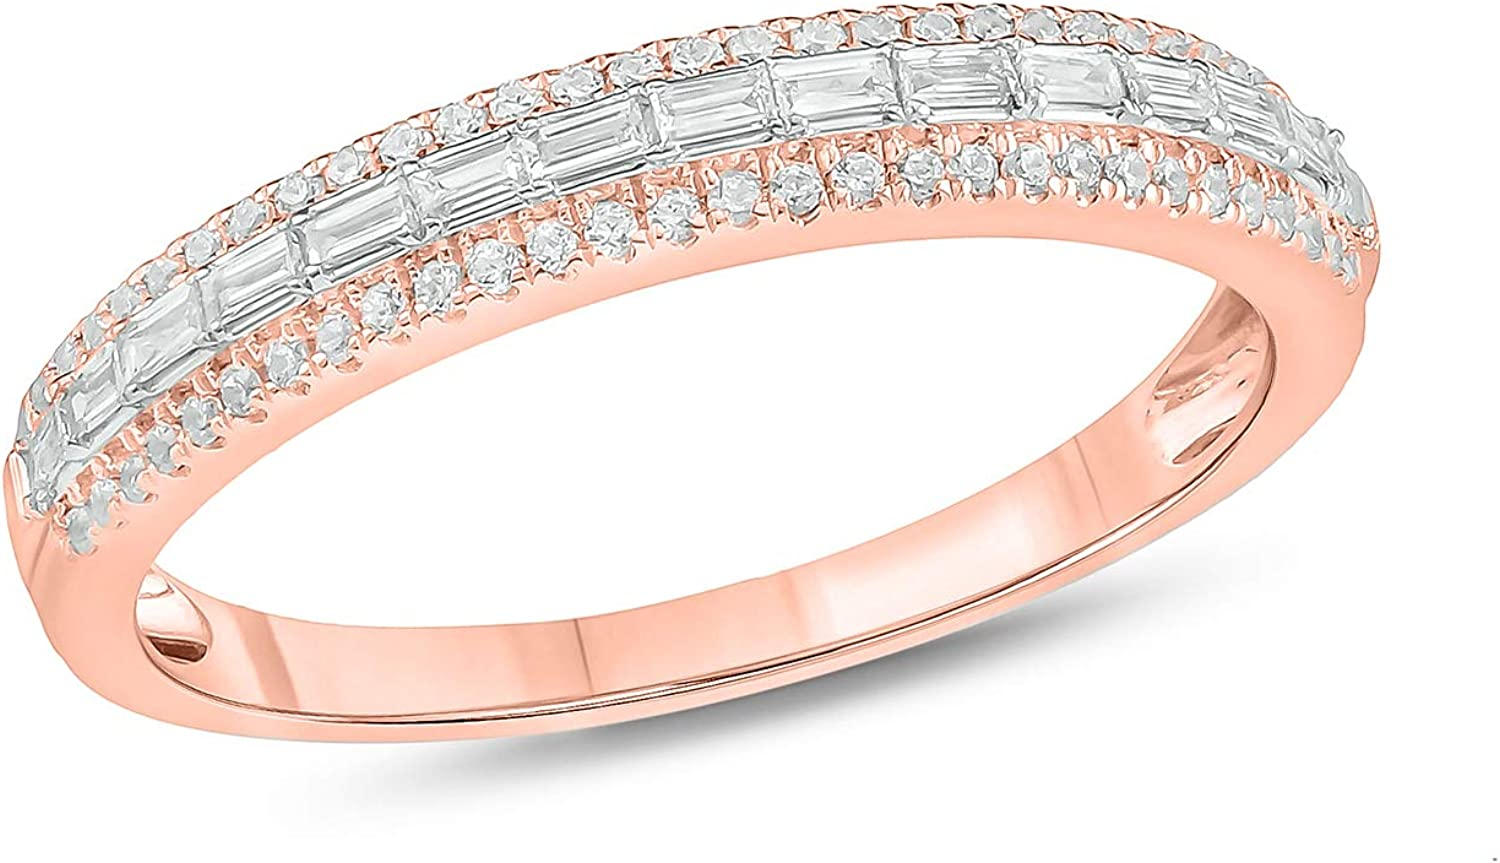 Cali Trove 1/4ct Round Baguette White Diamond 10K White Yellow Rose Gold Stackable Anniversary Band Ring for Women